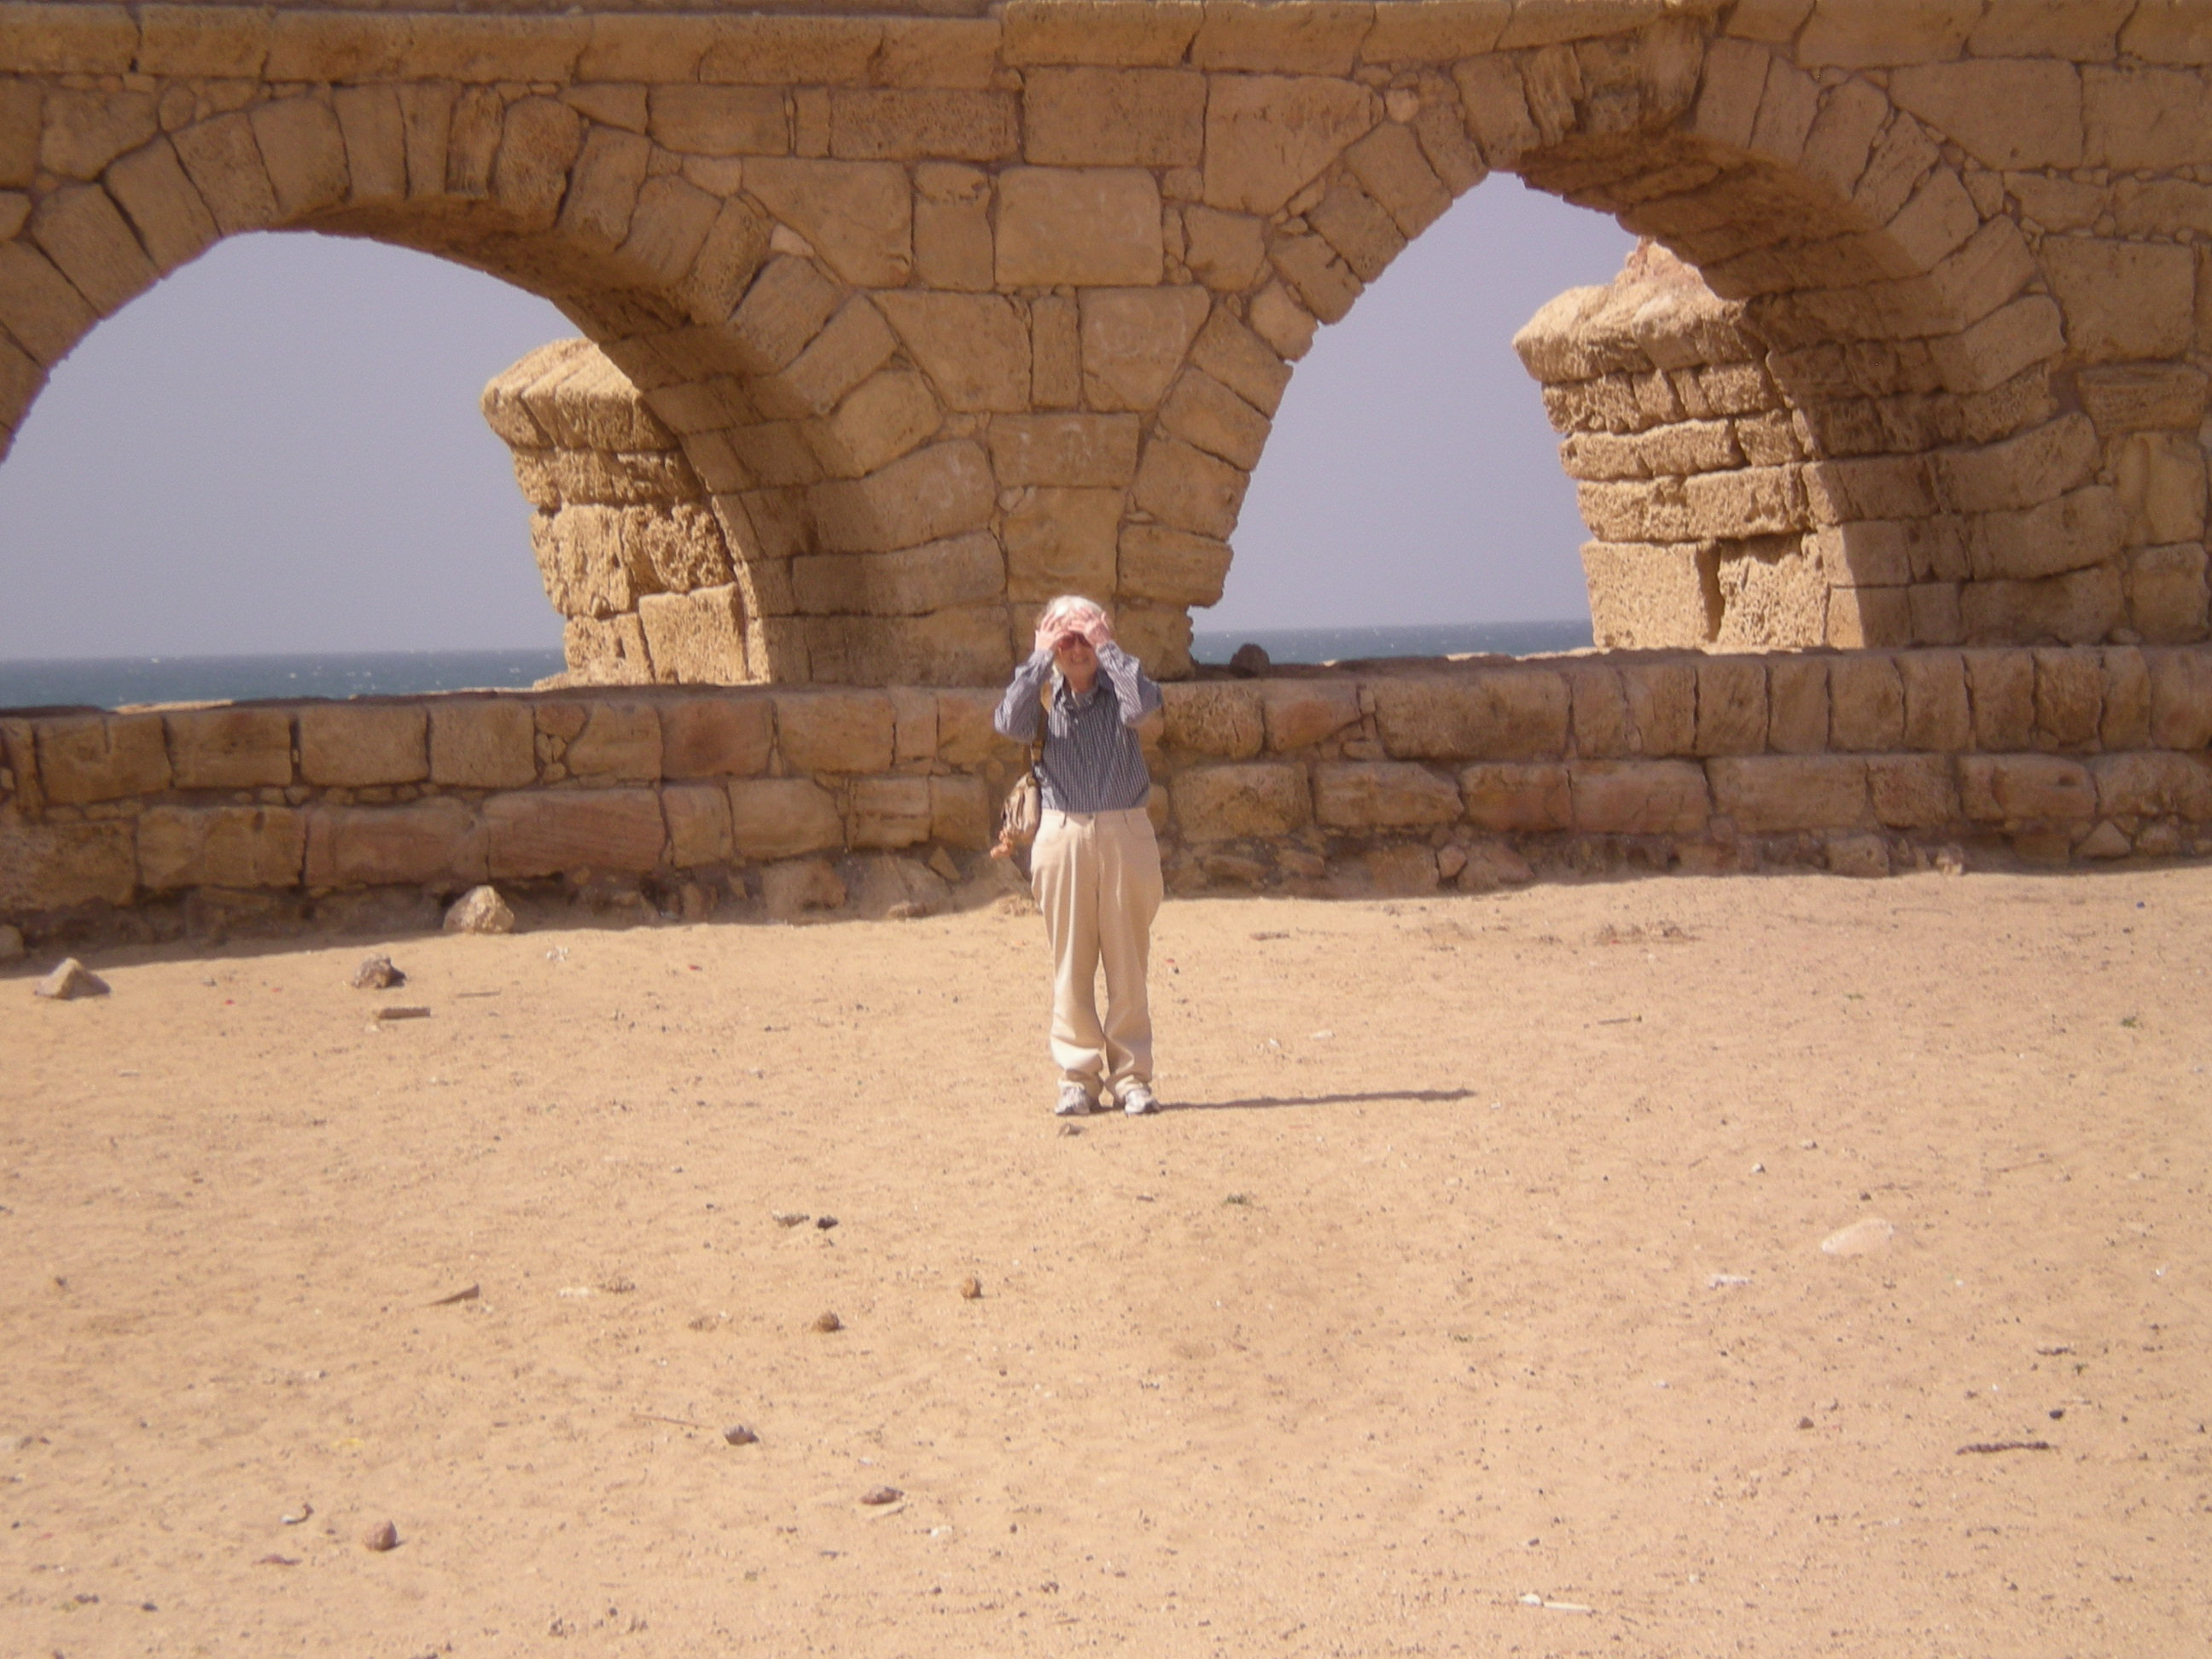 אני ואמת המים Me and the aqueduct